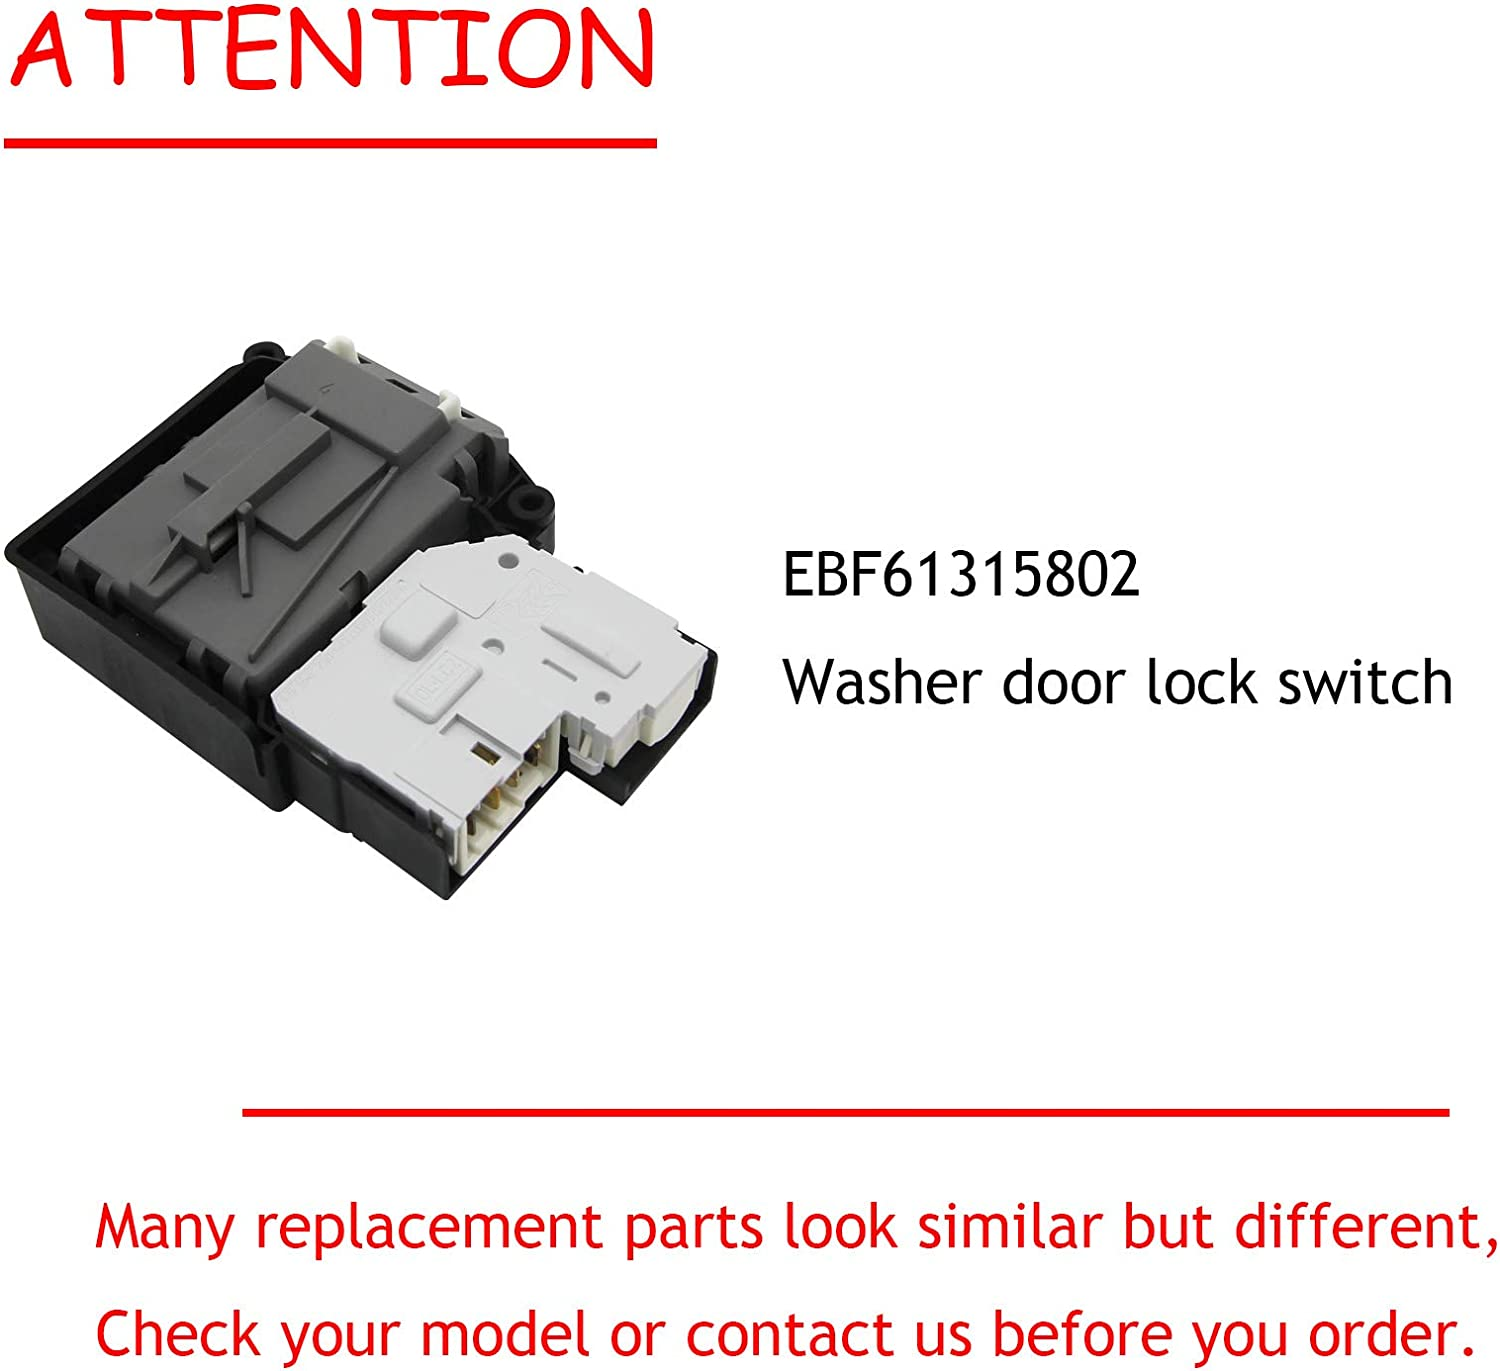 Replacement Part Washer Door Lock Switch for EBF61315802 Replace 2667085 AP5672154 PS7792232 Compatible with LG Kenmore Washer